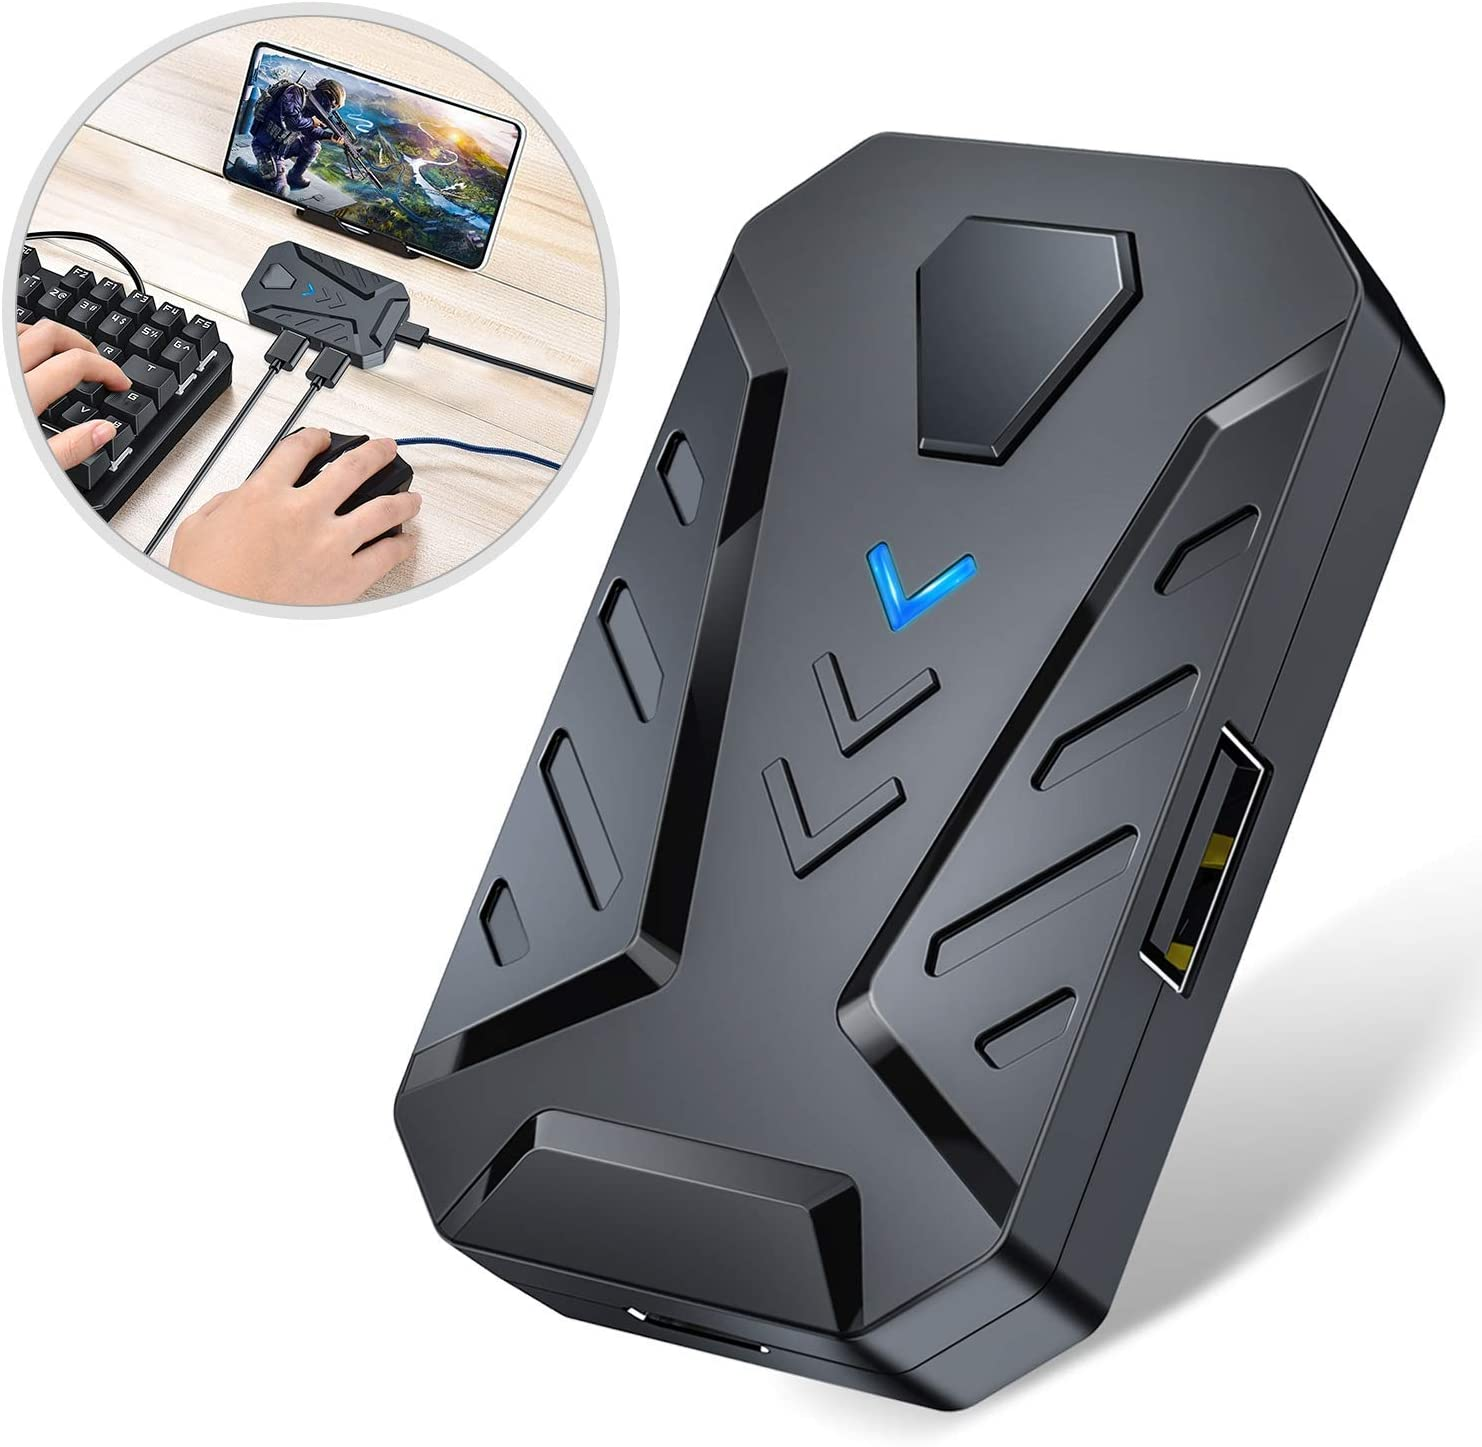 Kuinayouyi 3 in 1 Gaming Keyboard Mouse Converter Combo for Smartphone PC PUBG Mobile Game Accessories